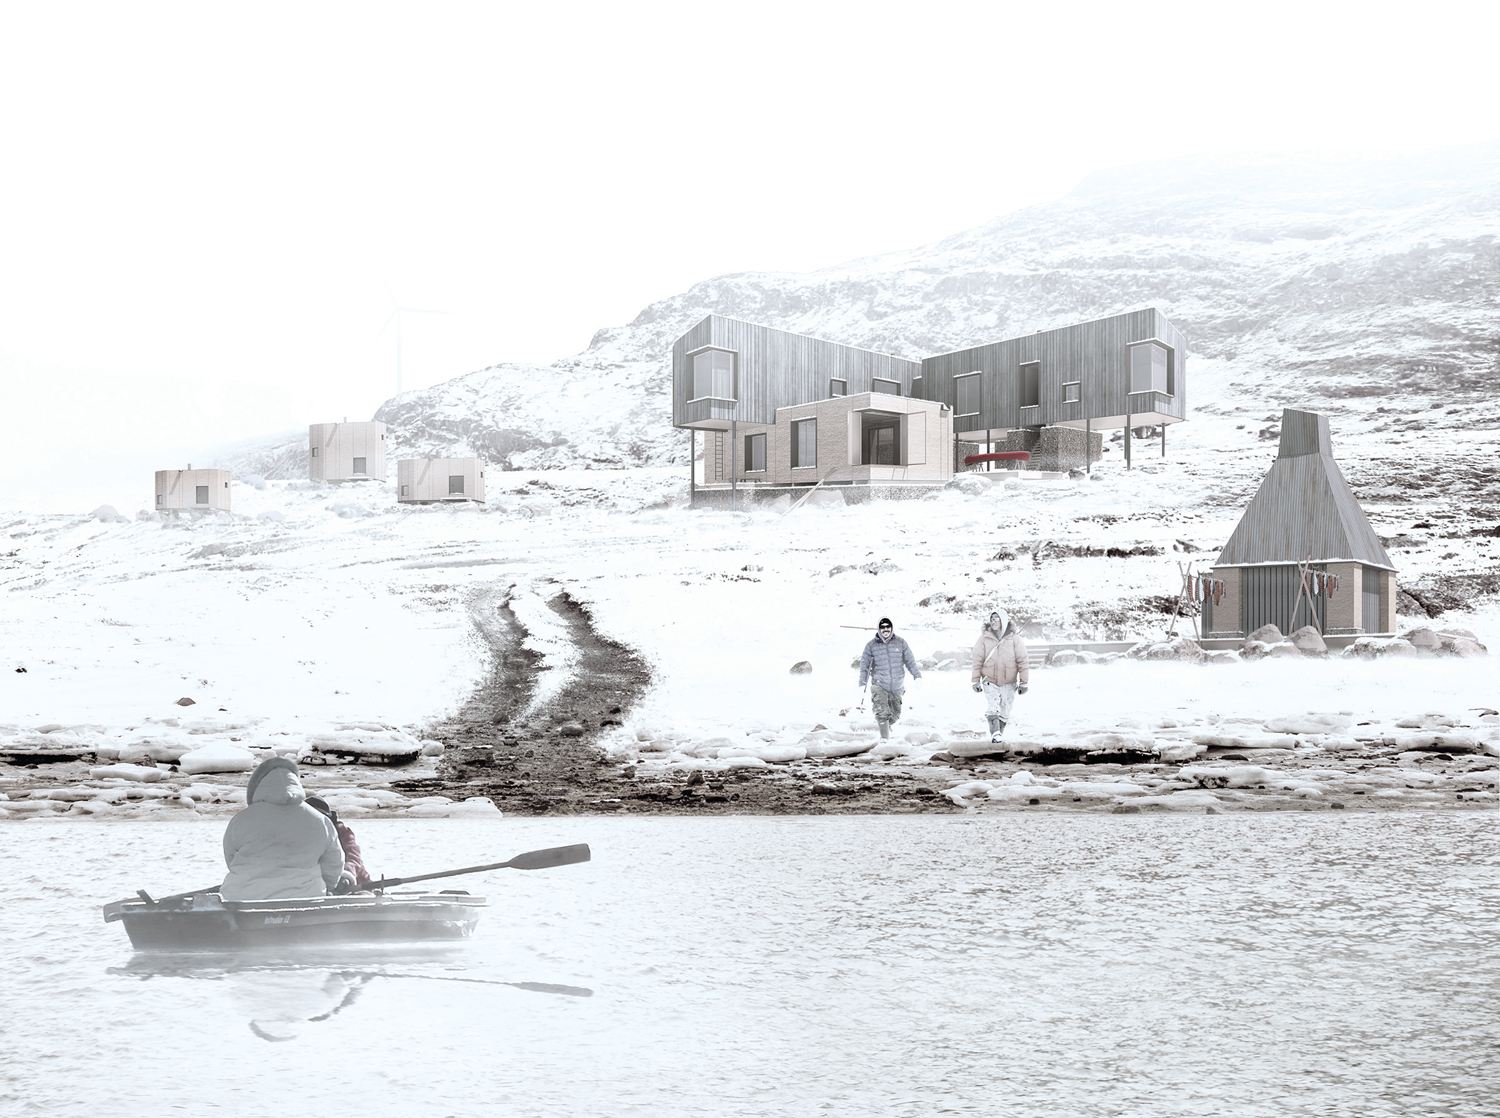 From Matter to Place: A Camp for the Transmission of Inuit Local Knowledge